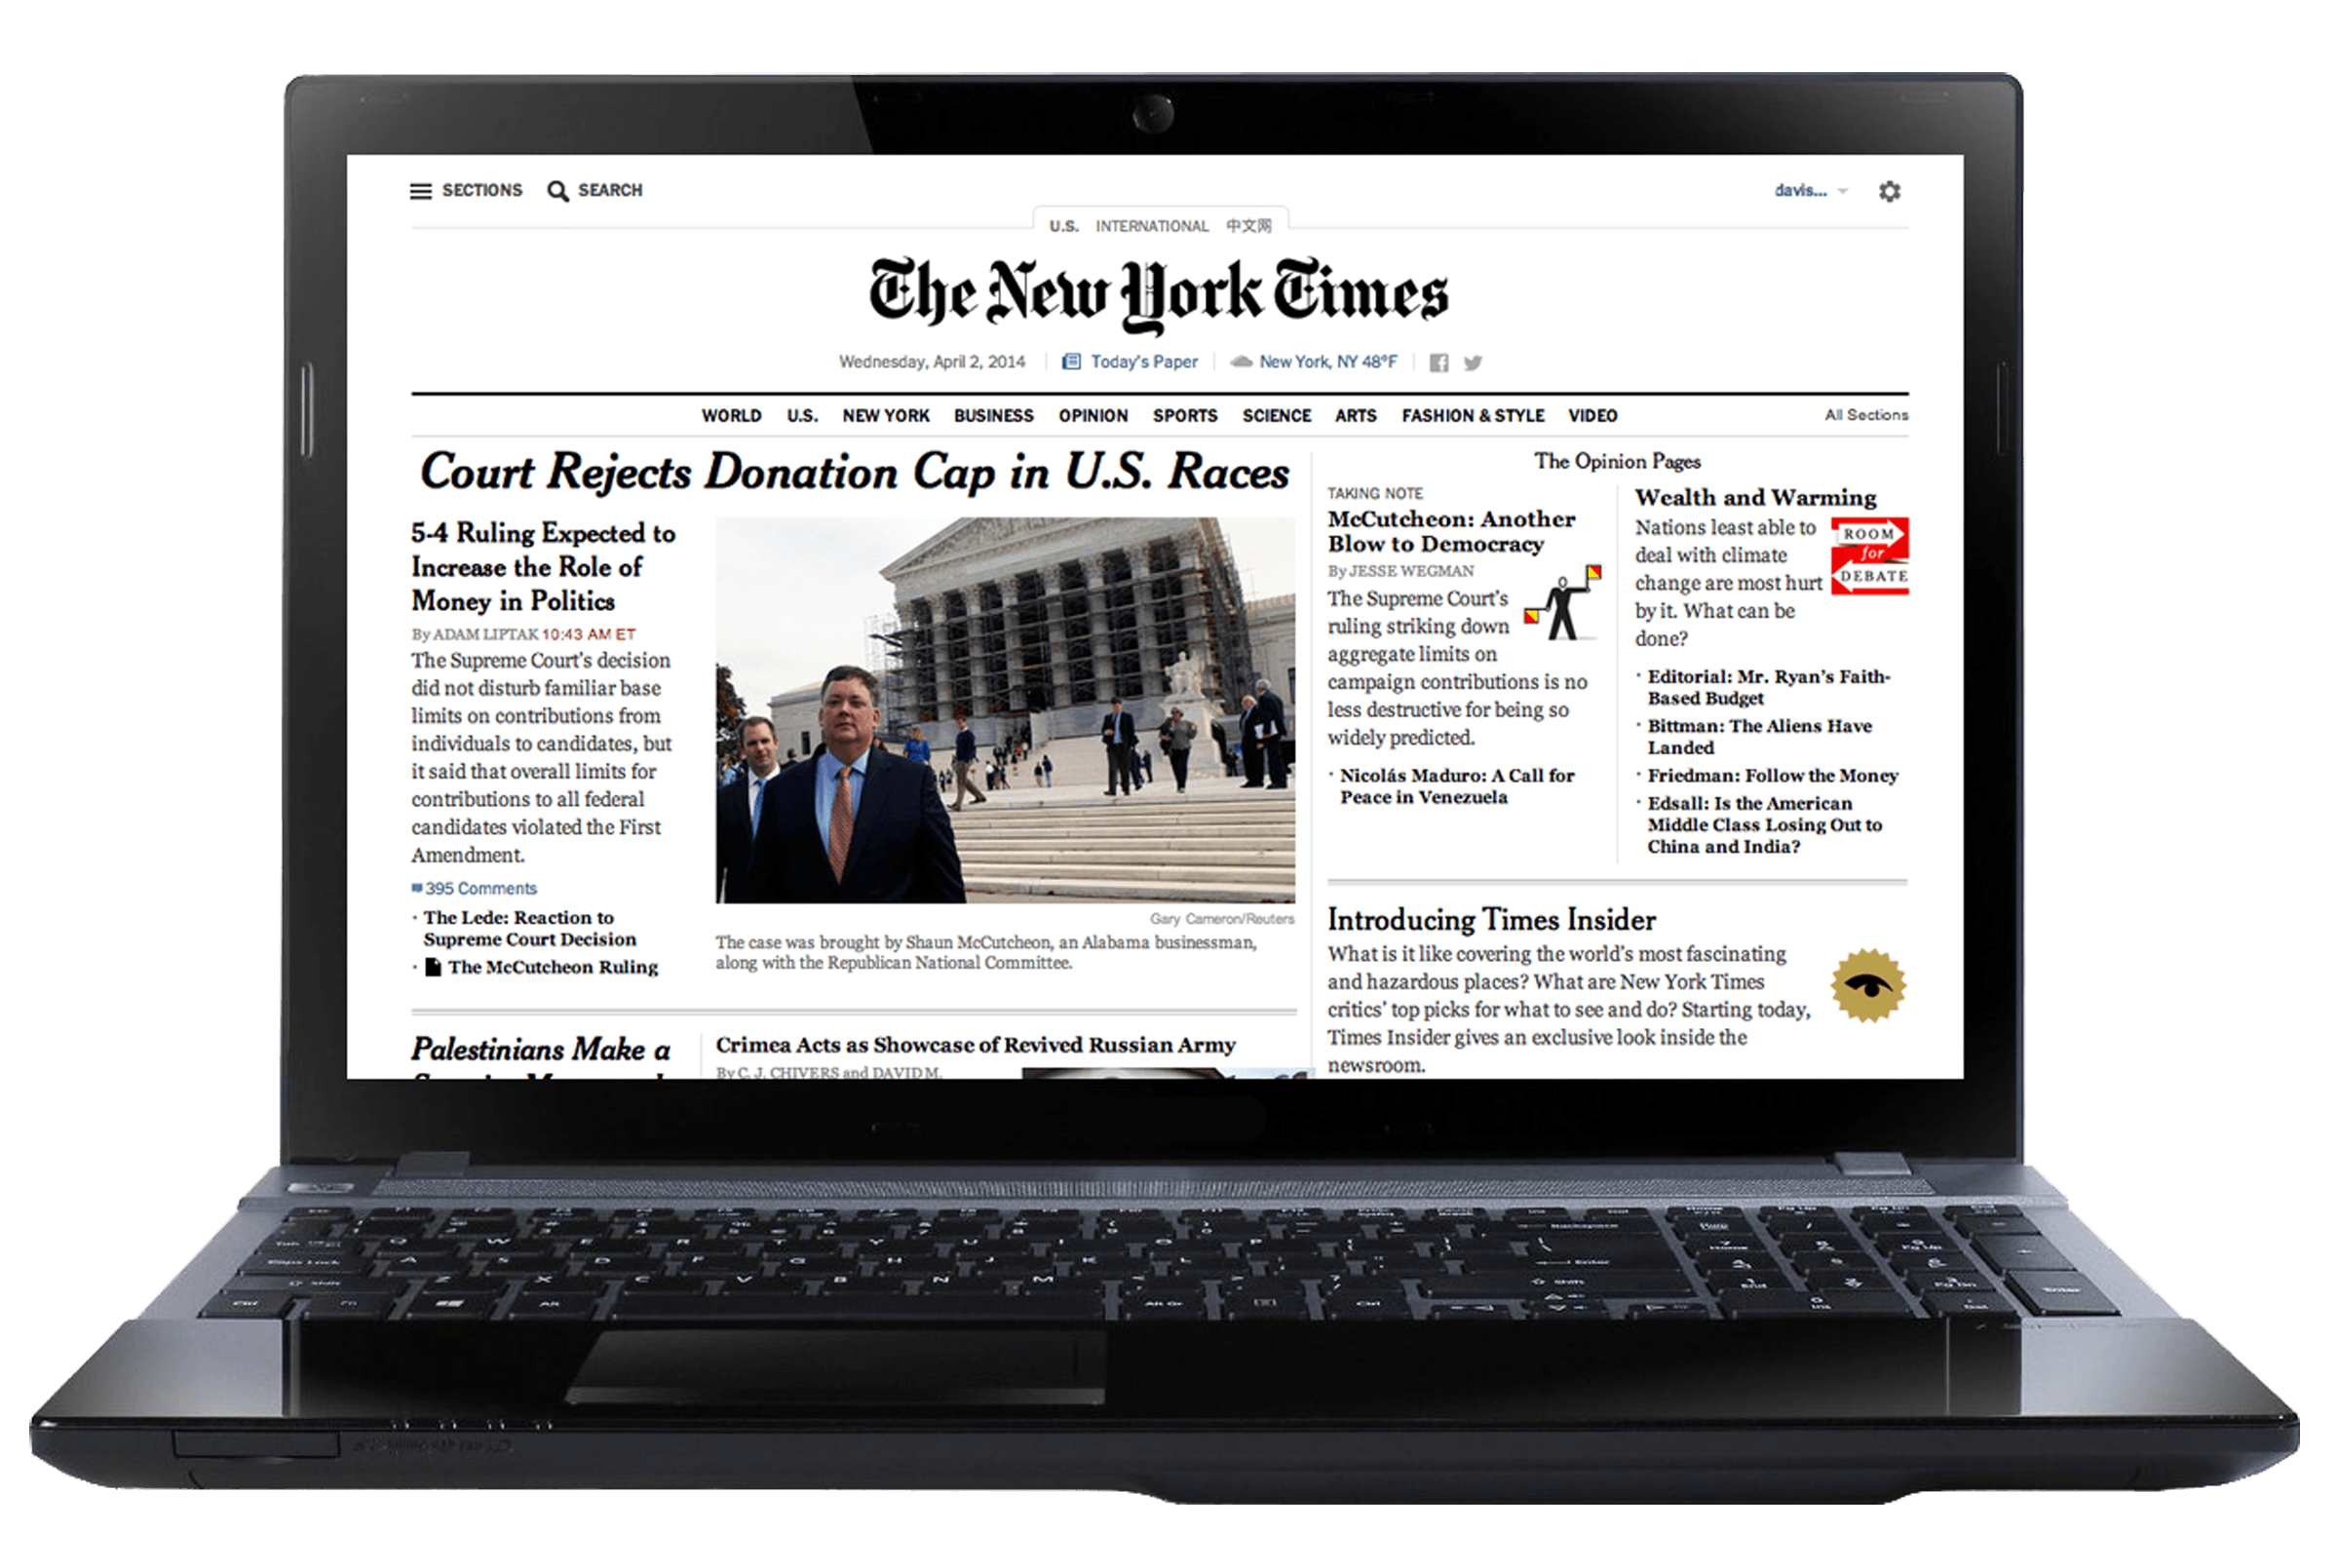 image of laptop displaying front page of New York Times